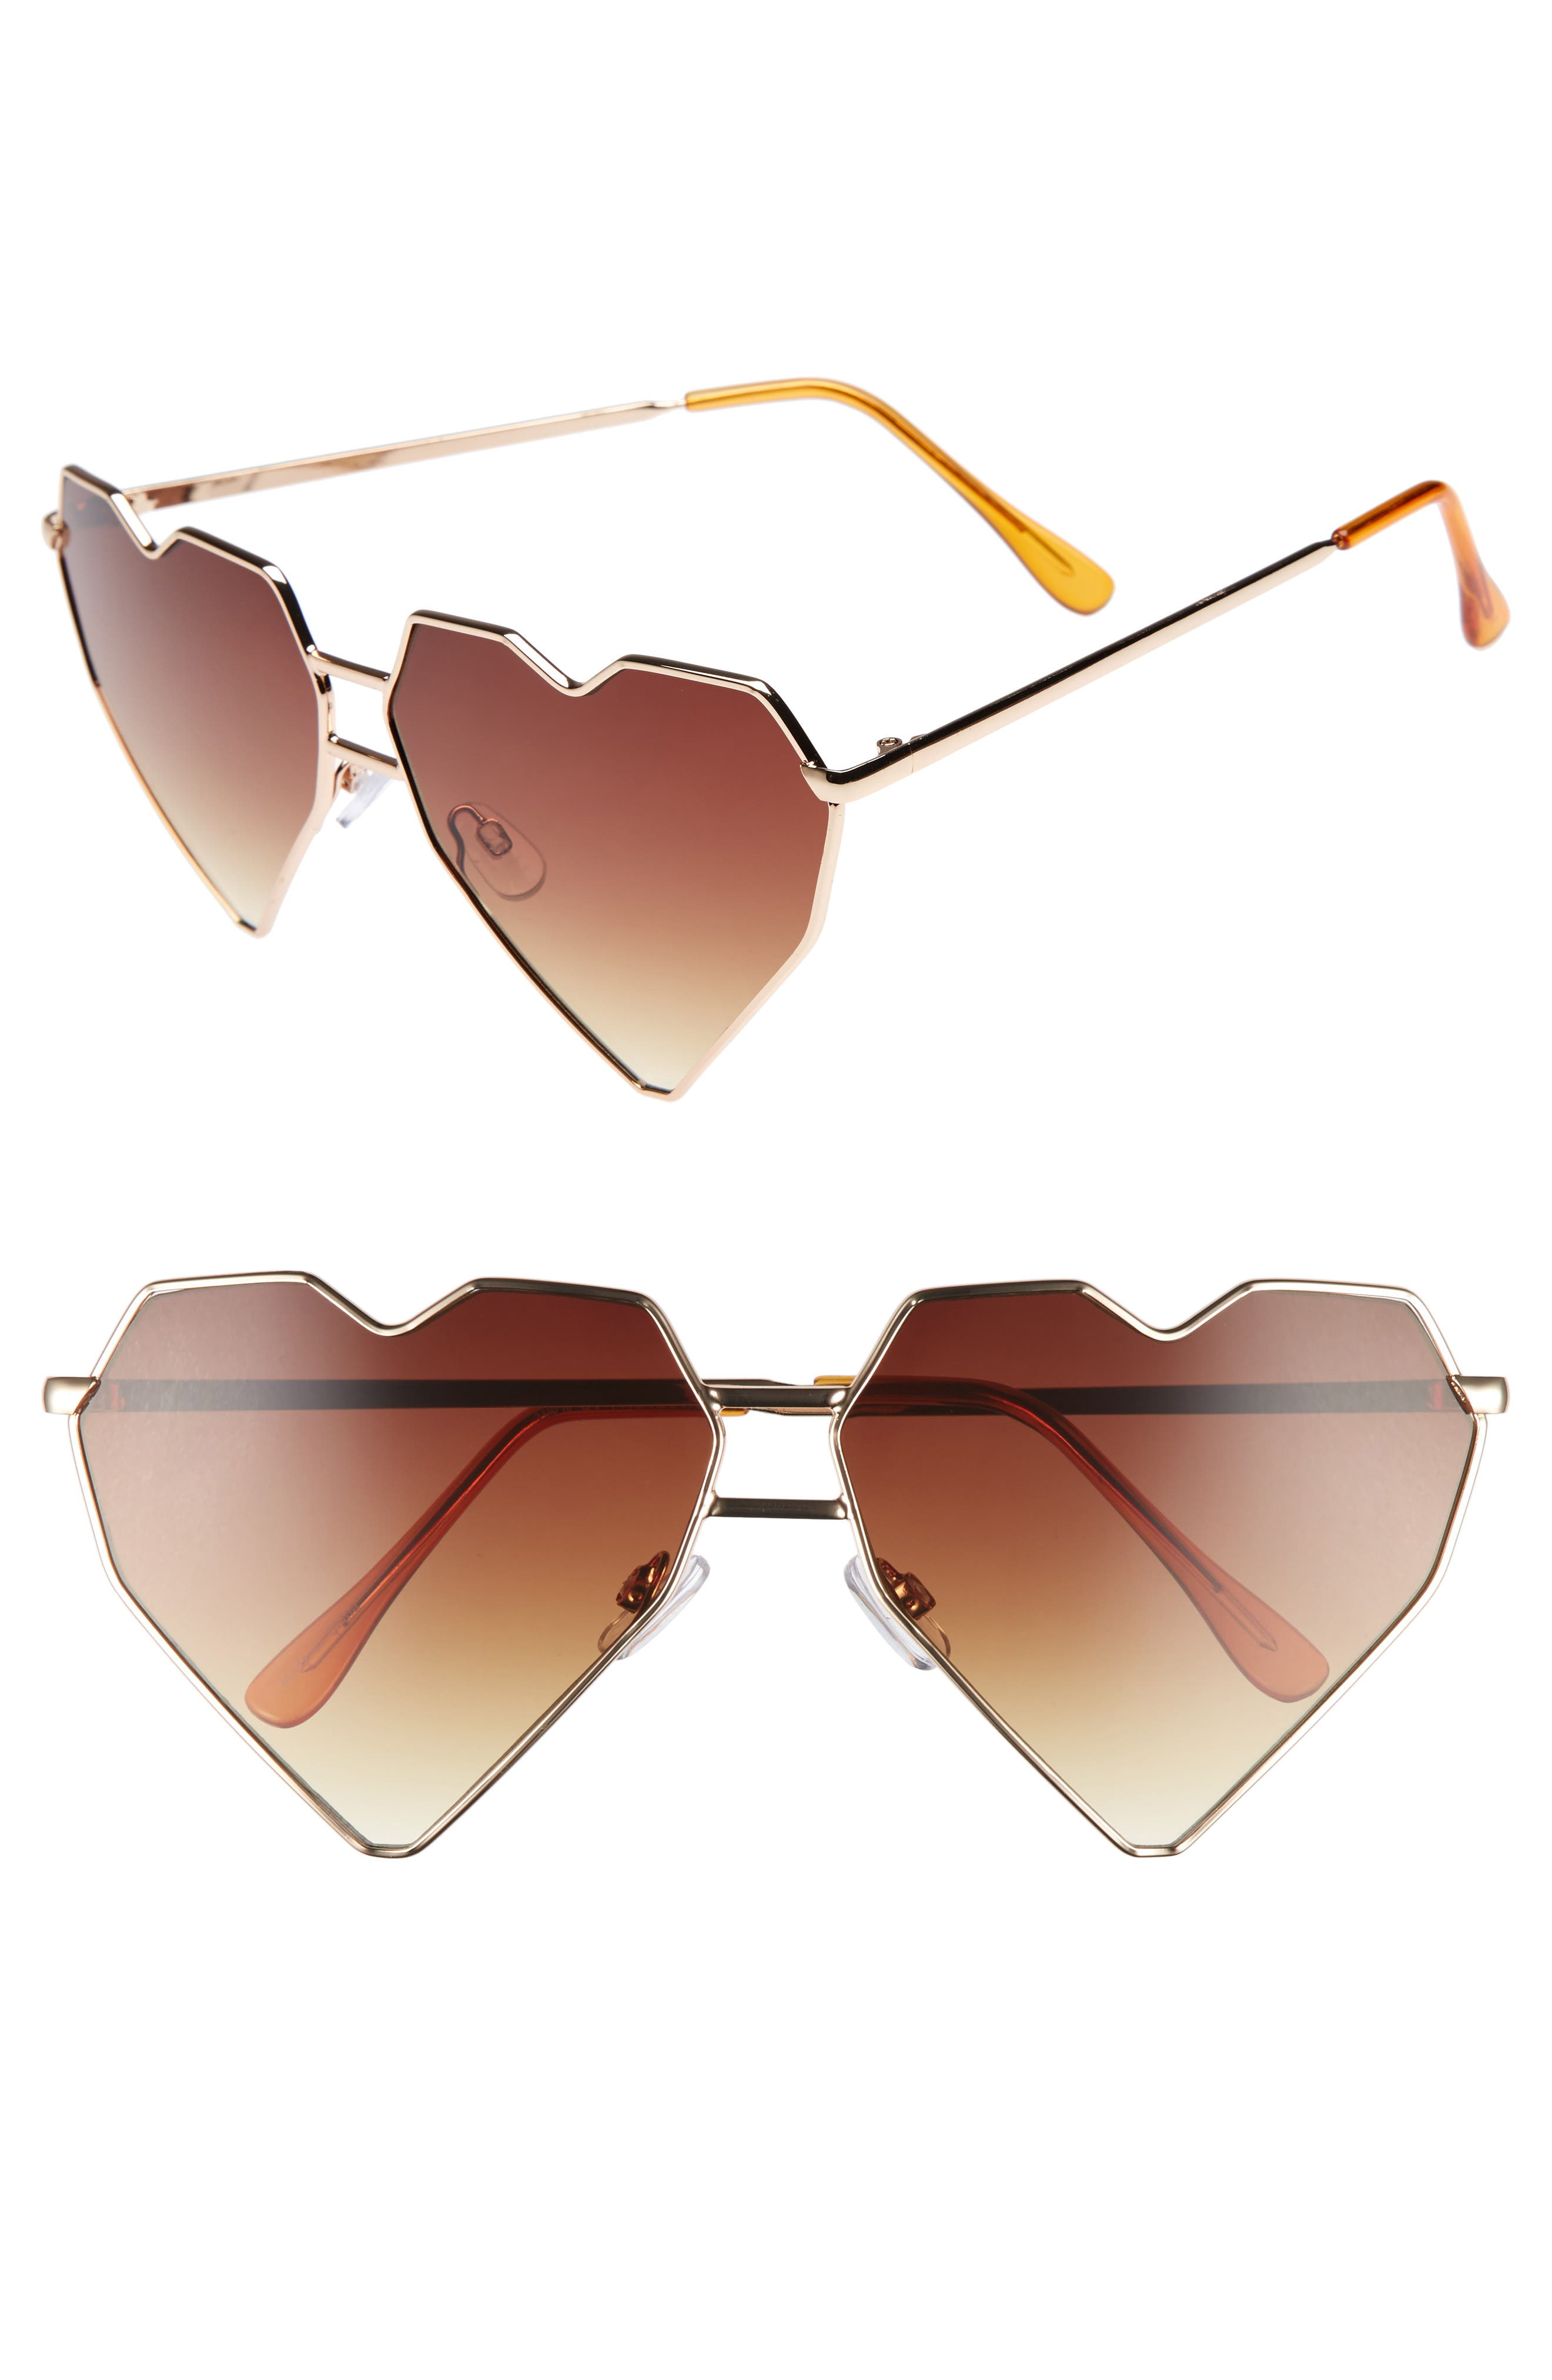 64mm Heart Shaped Sunglasses,                         Main,                         color, 710